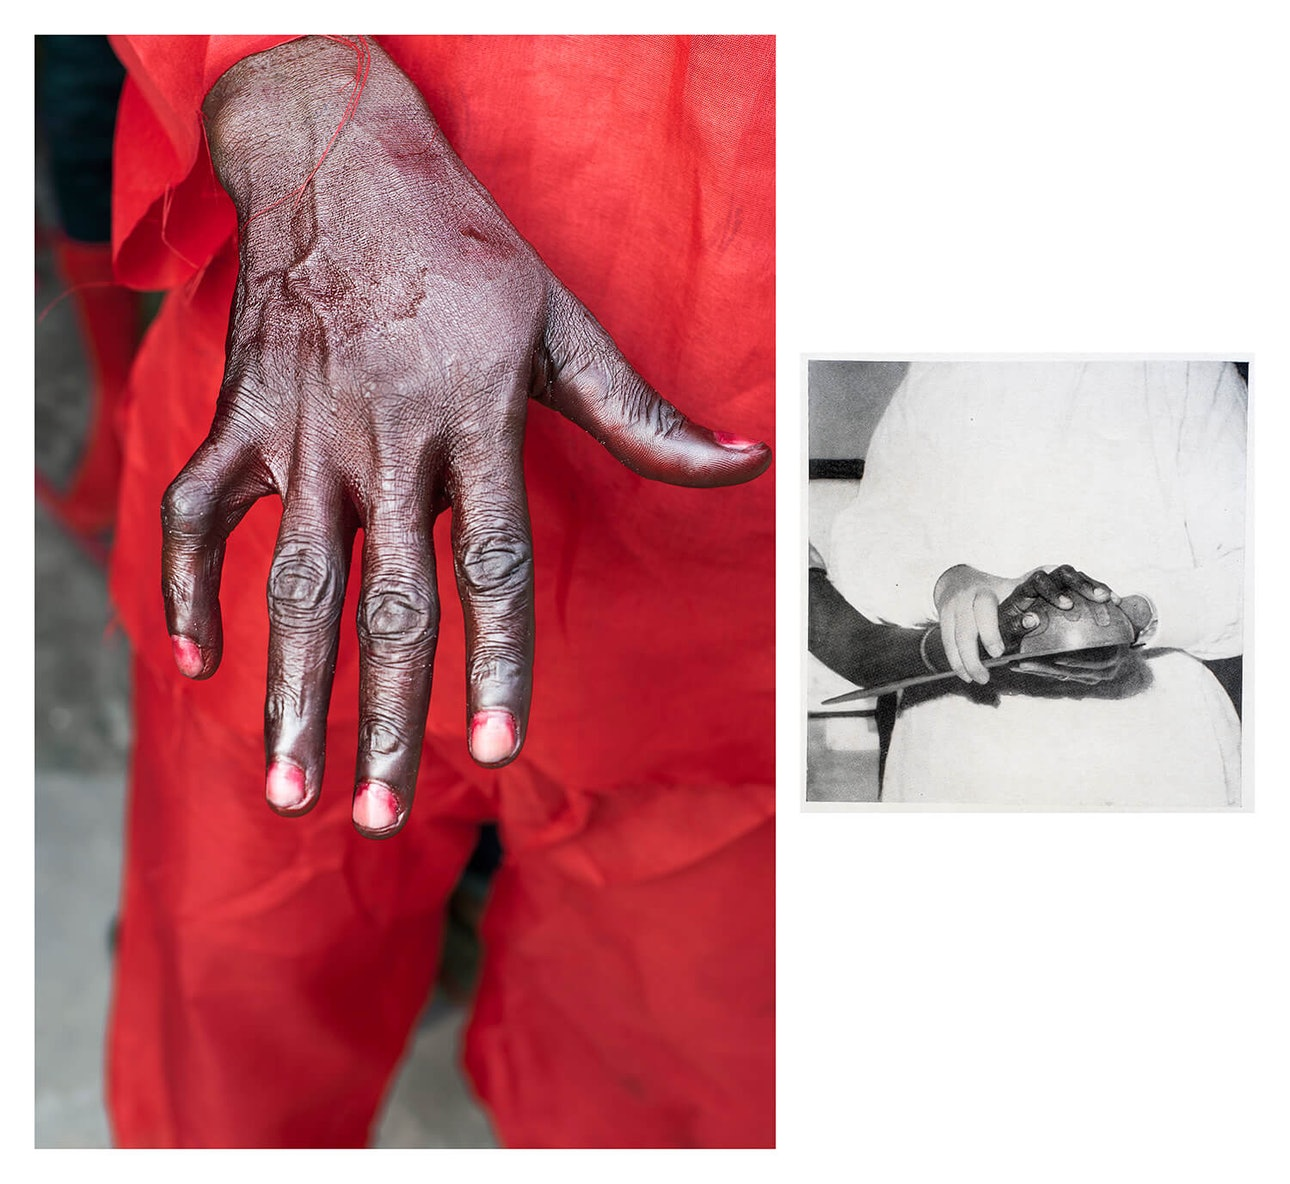 3293Gloria_Oyarzabal_05-Colonization-of-the-mind-RED-HAND-manipulation_prize_2020